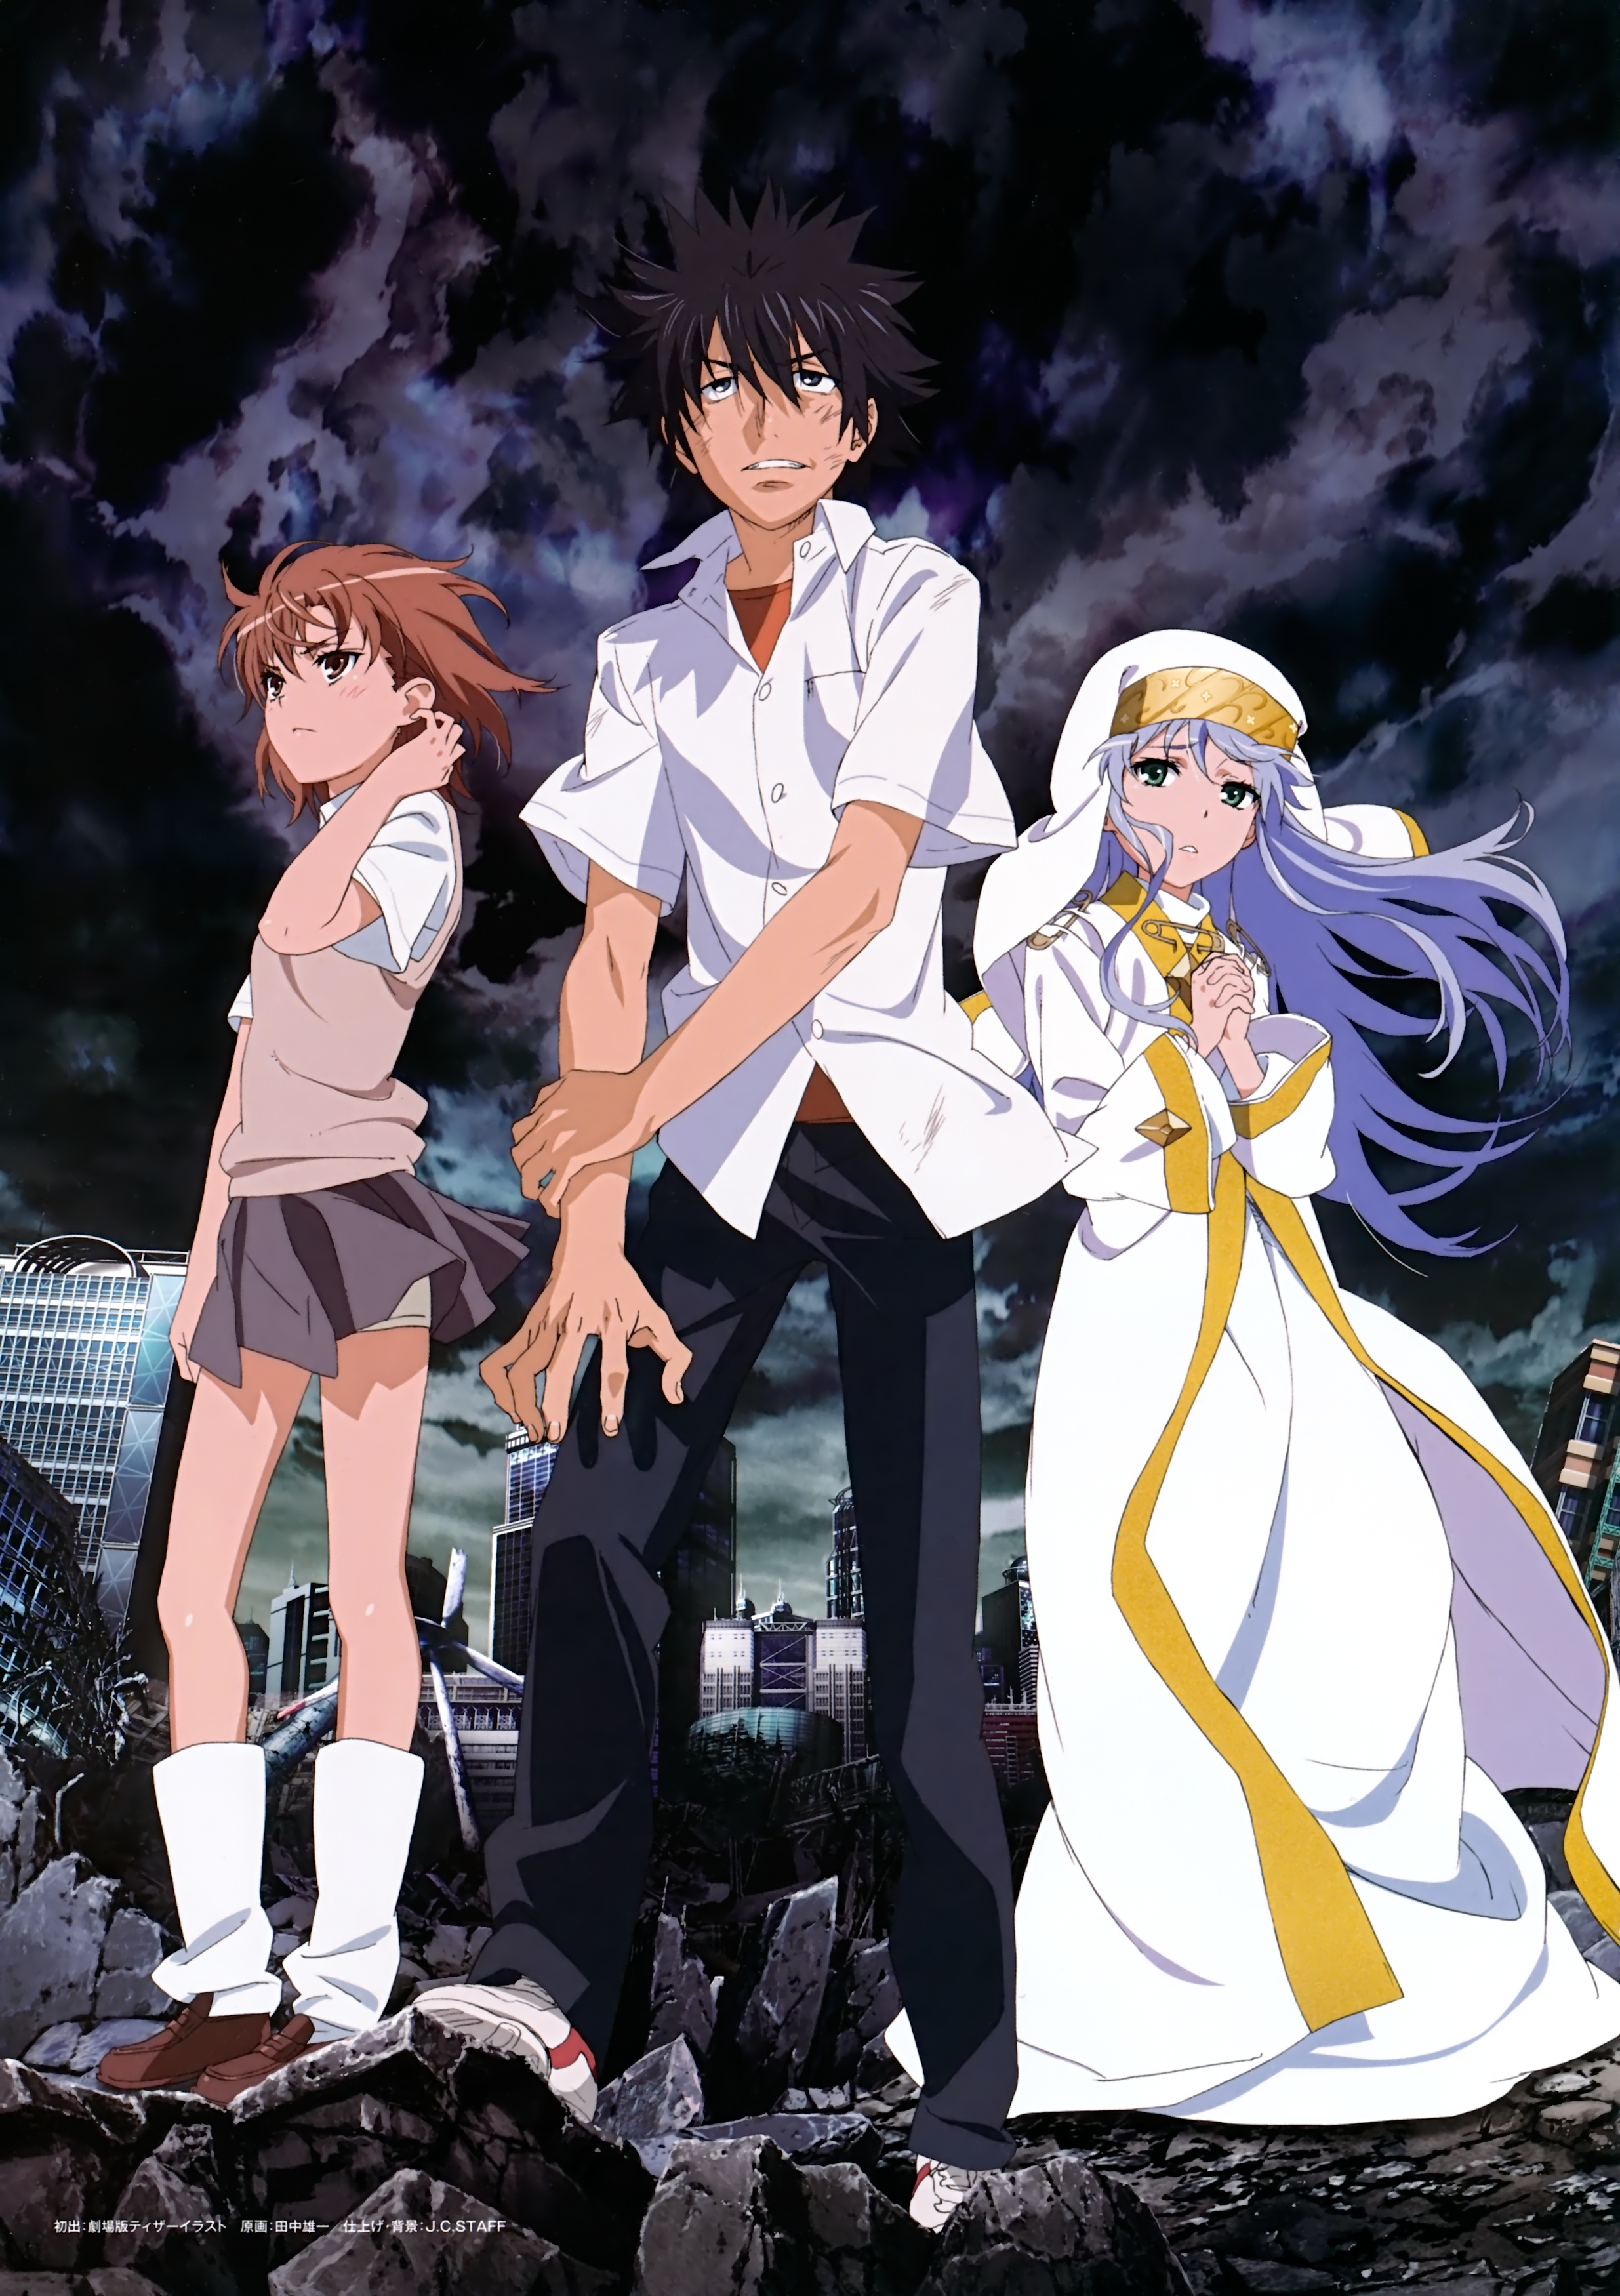 23 A Certain Magical Index The Movie The Miracle Of Endymion